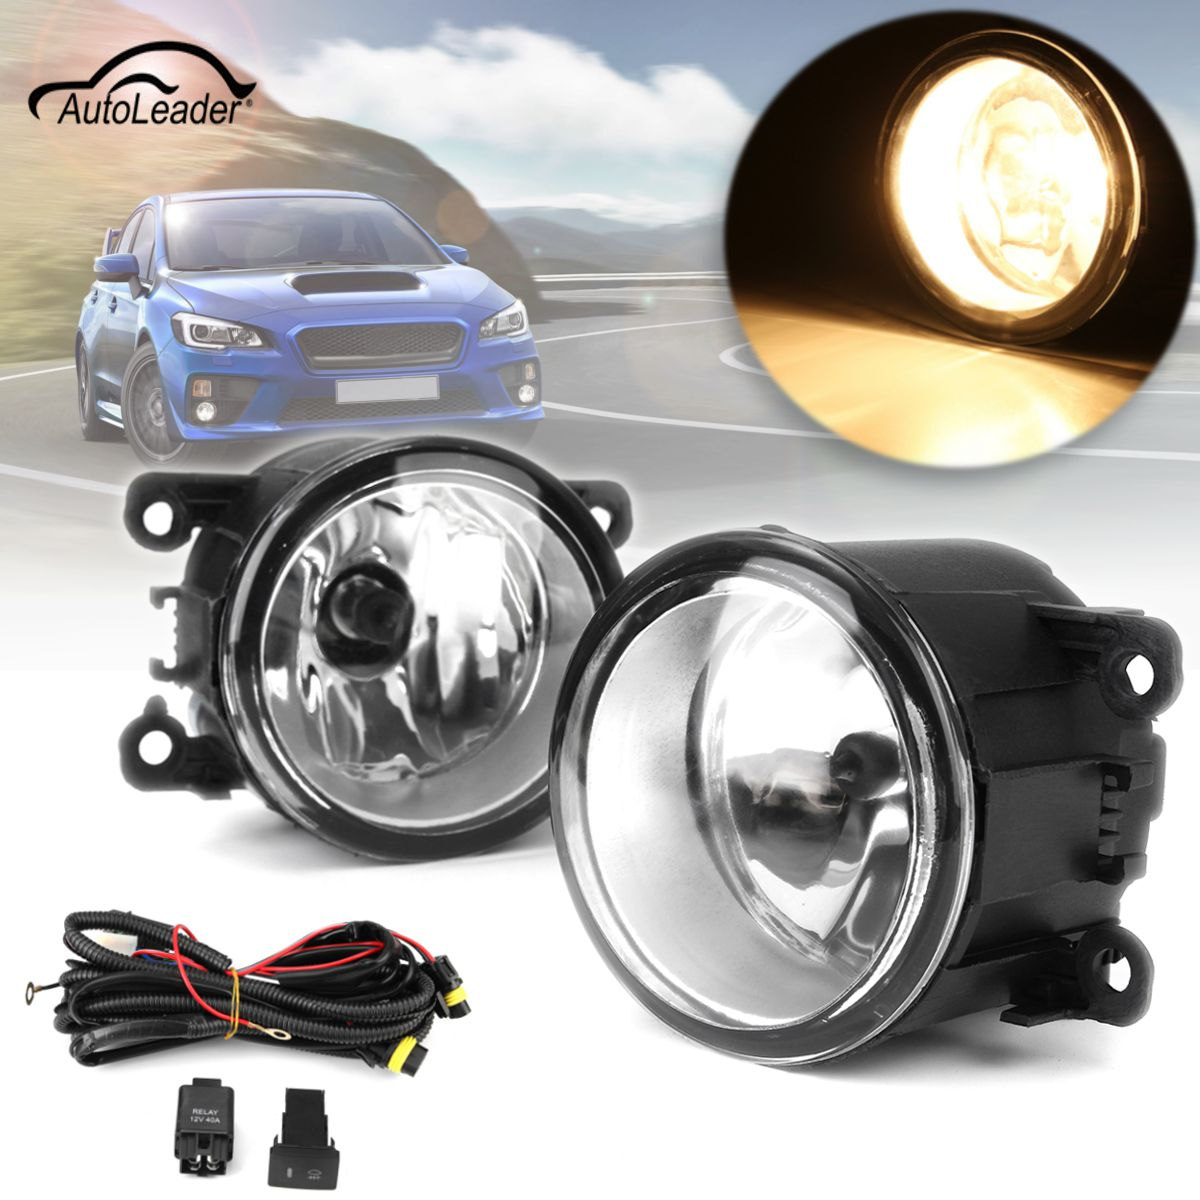 For Subaru Impreza/WRX/WRX STI/XV 1 Pair H11 Car Front Fog Light Clear Lens With Wiring Kit dioni блузы прозрачные